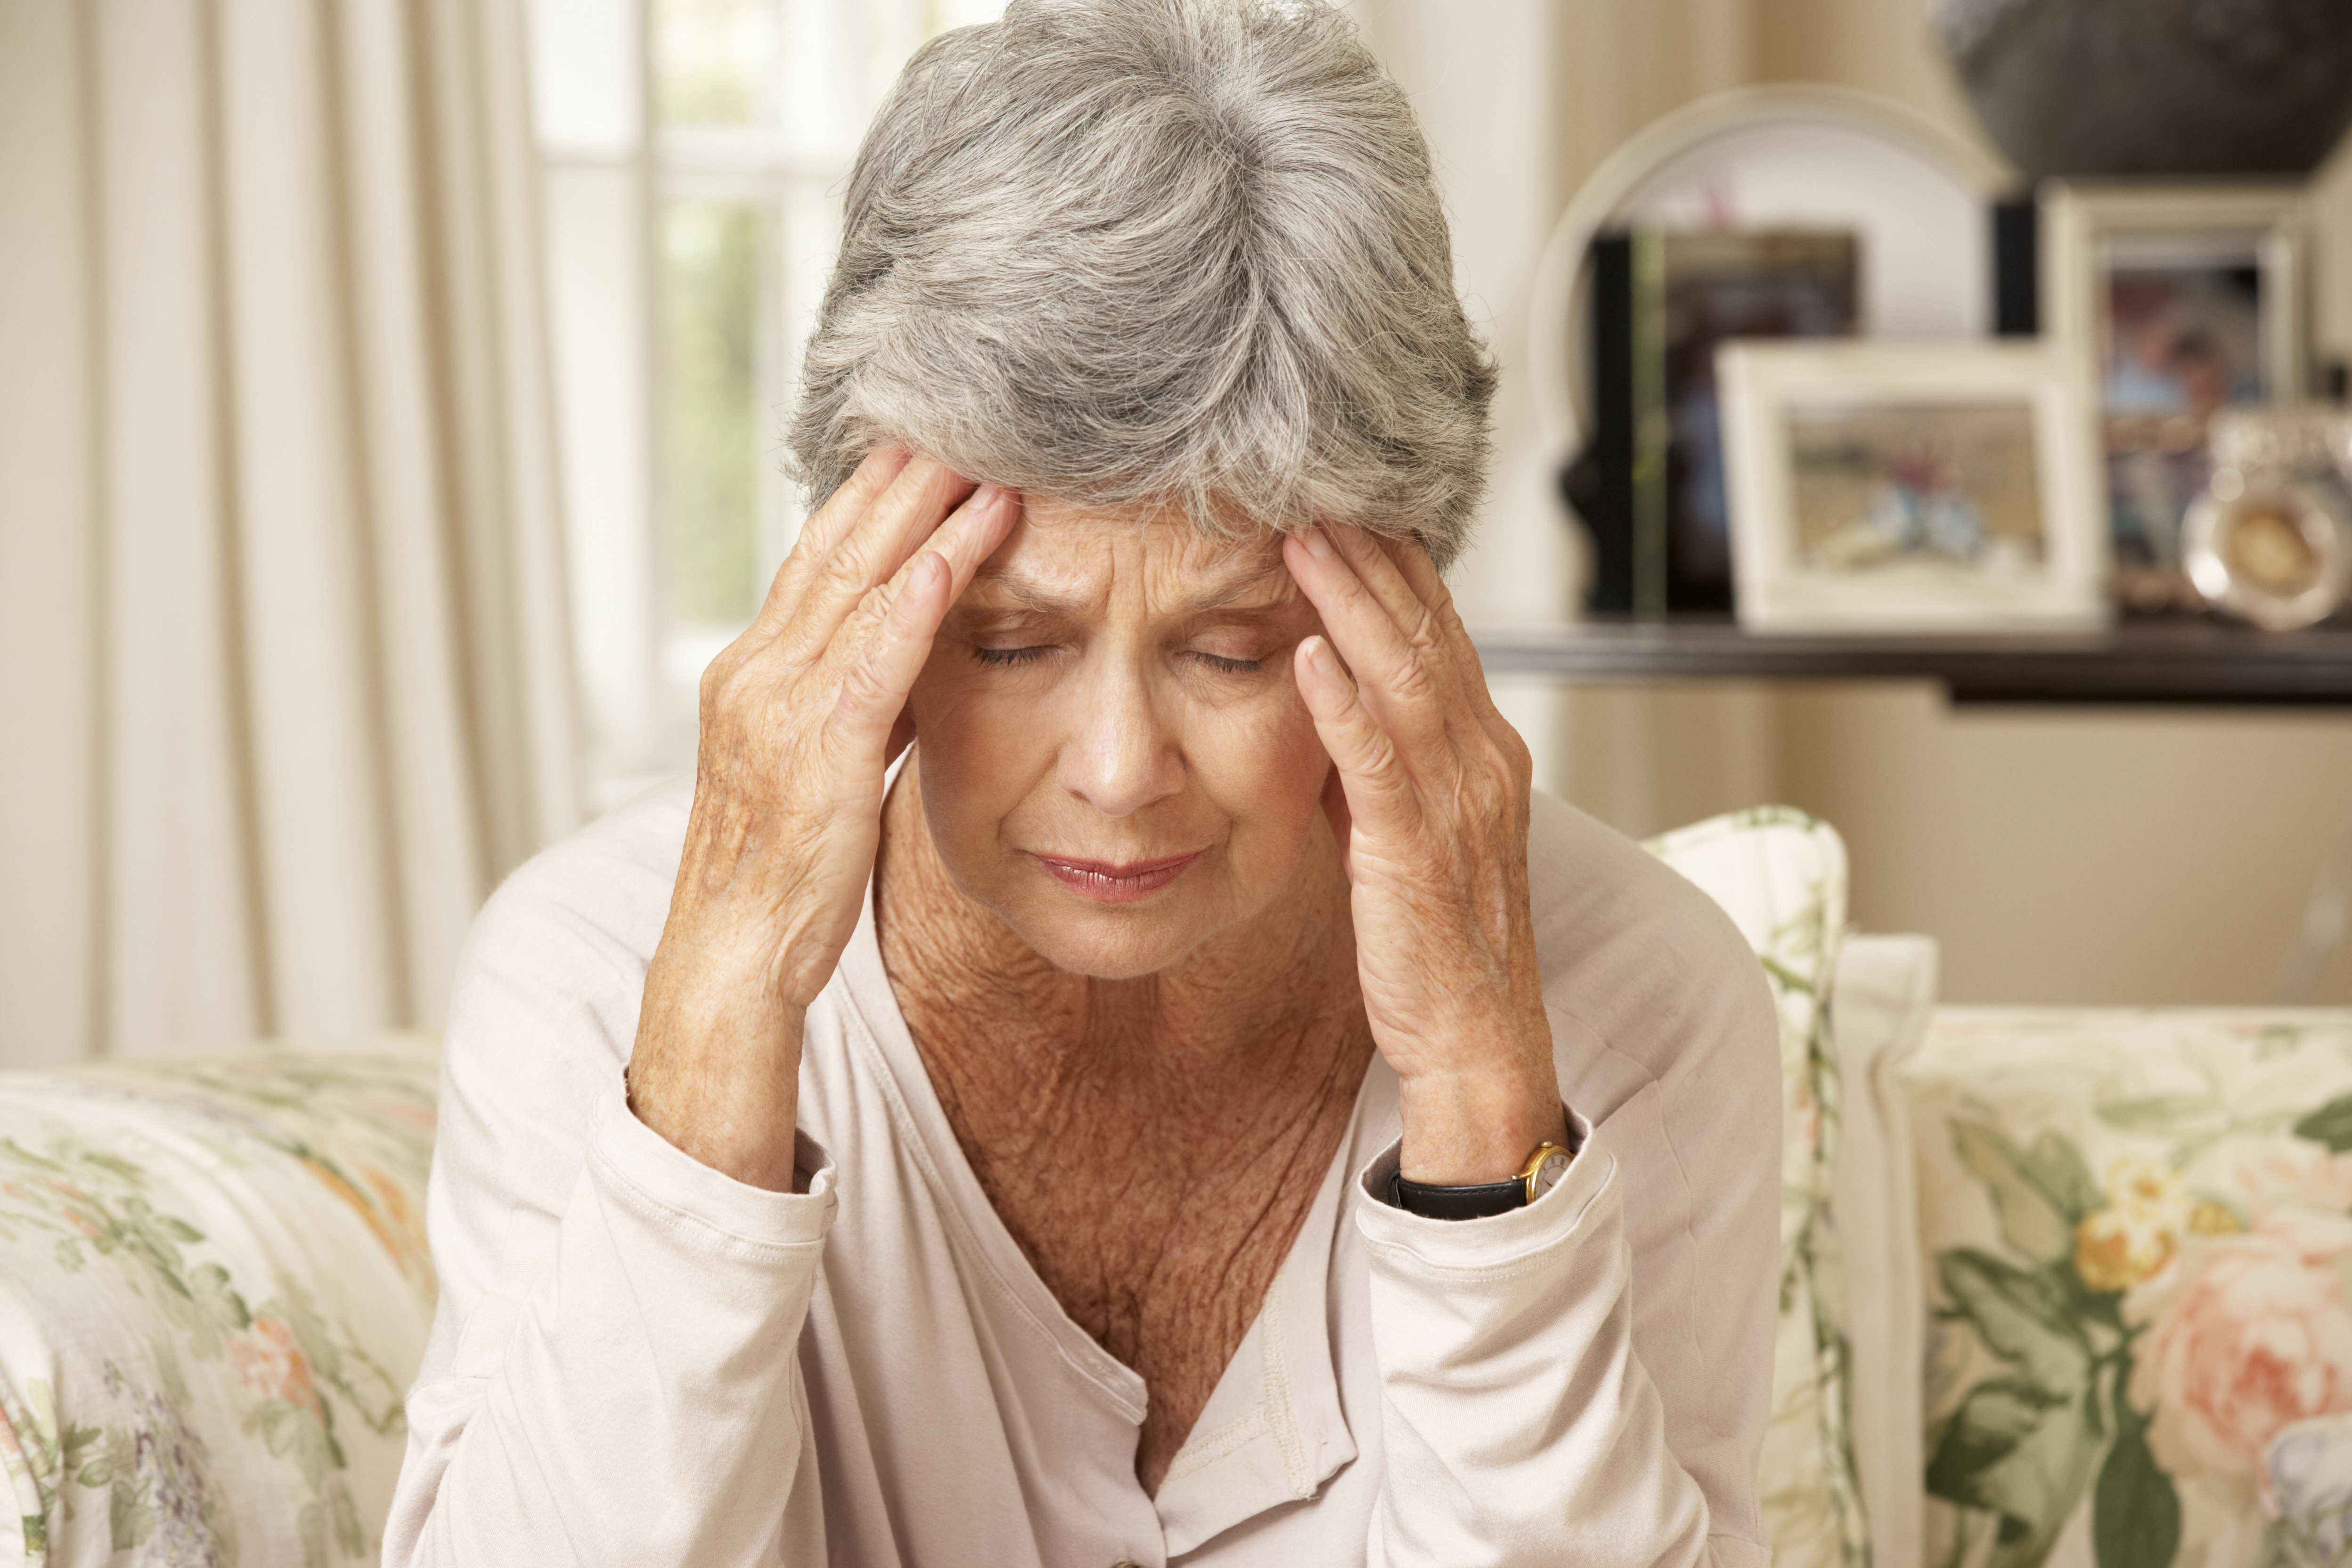 headache, tension, magnesium and healthy diet for greater health